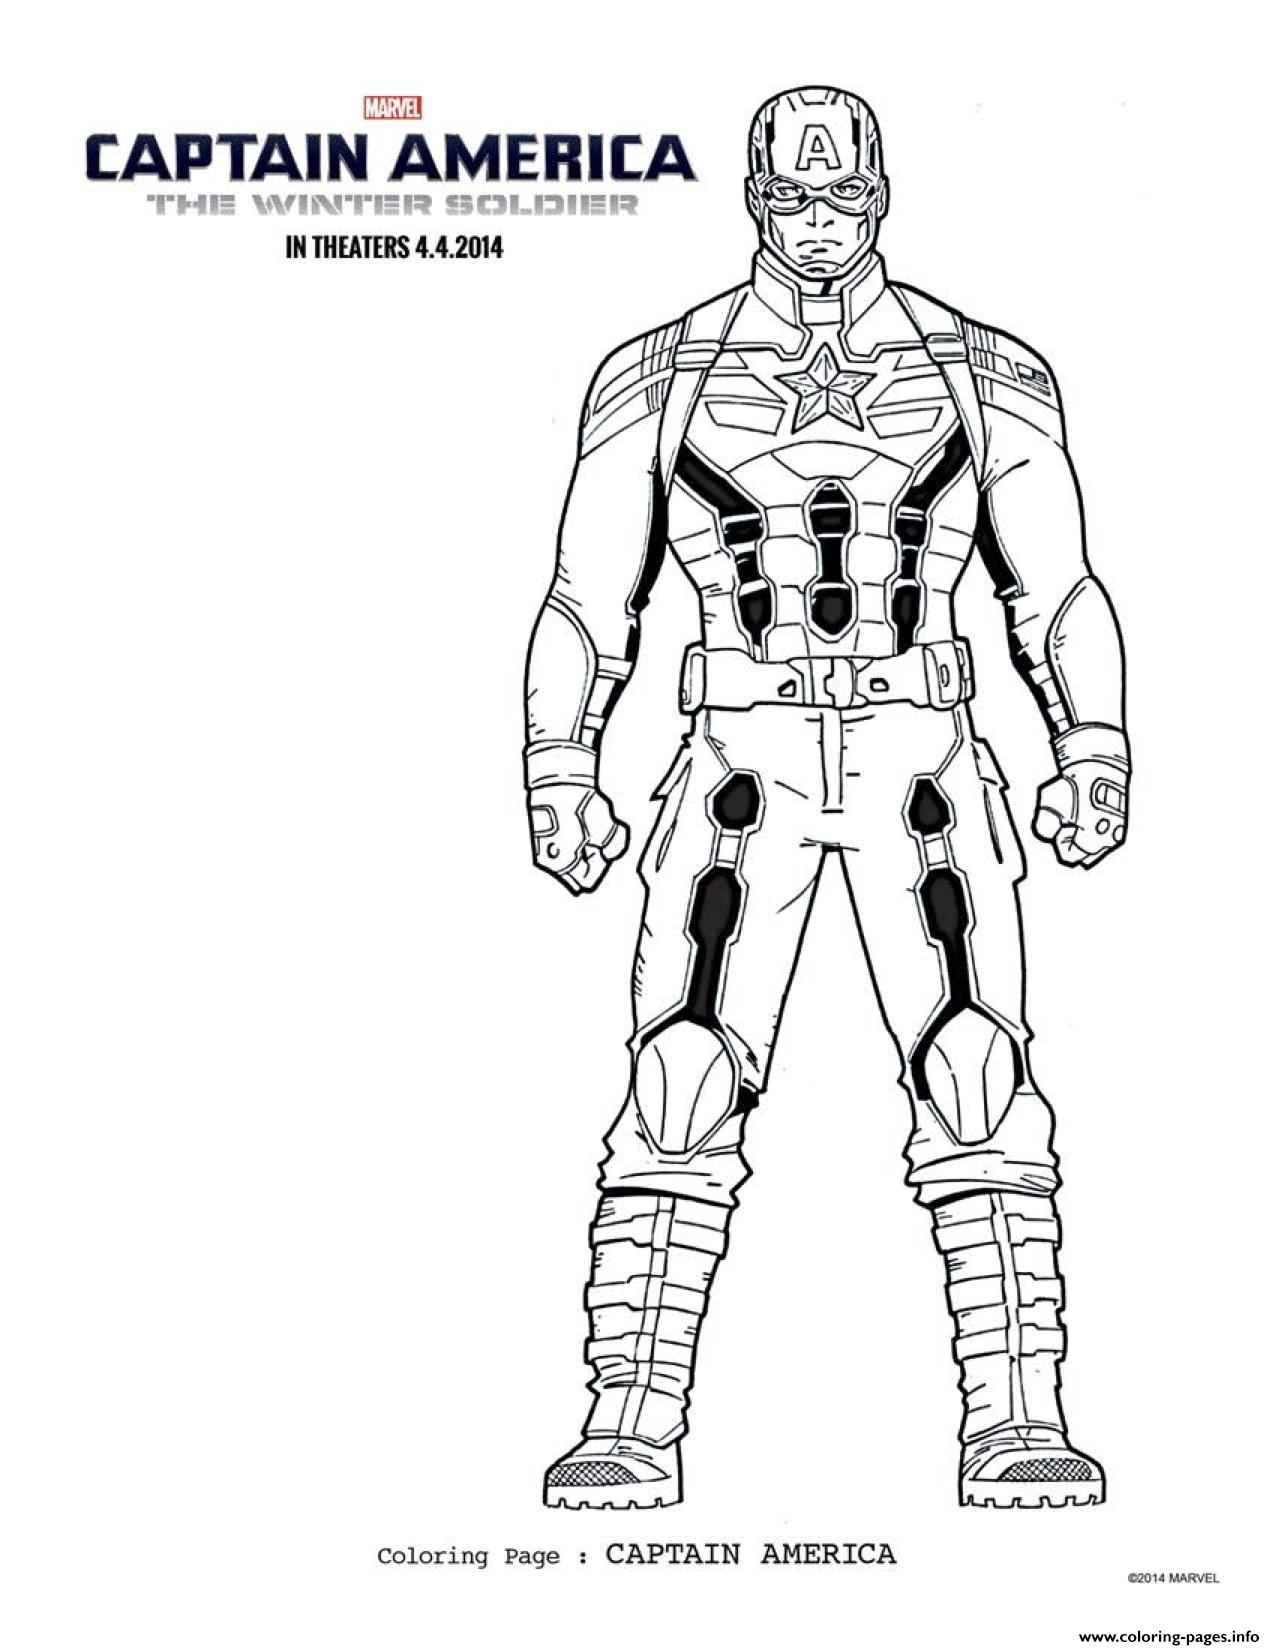 Superhero Captain America 67 coloring pages